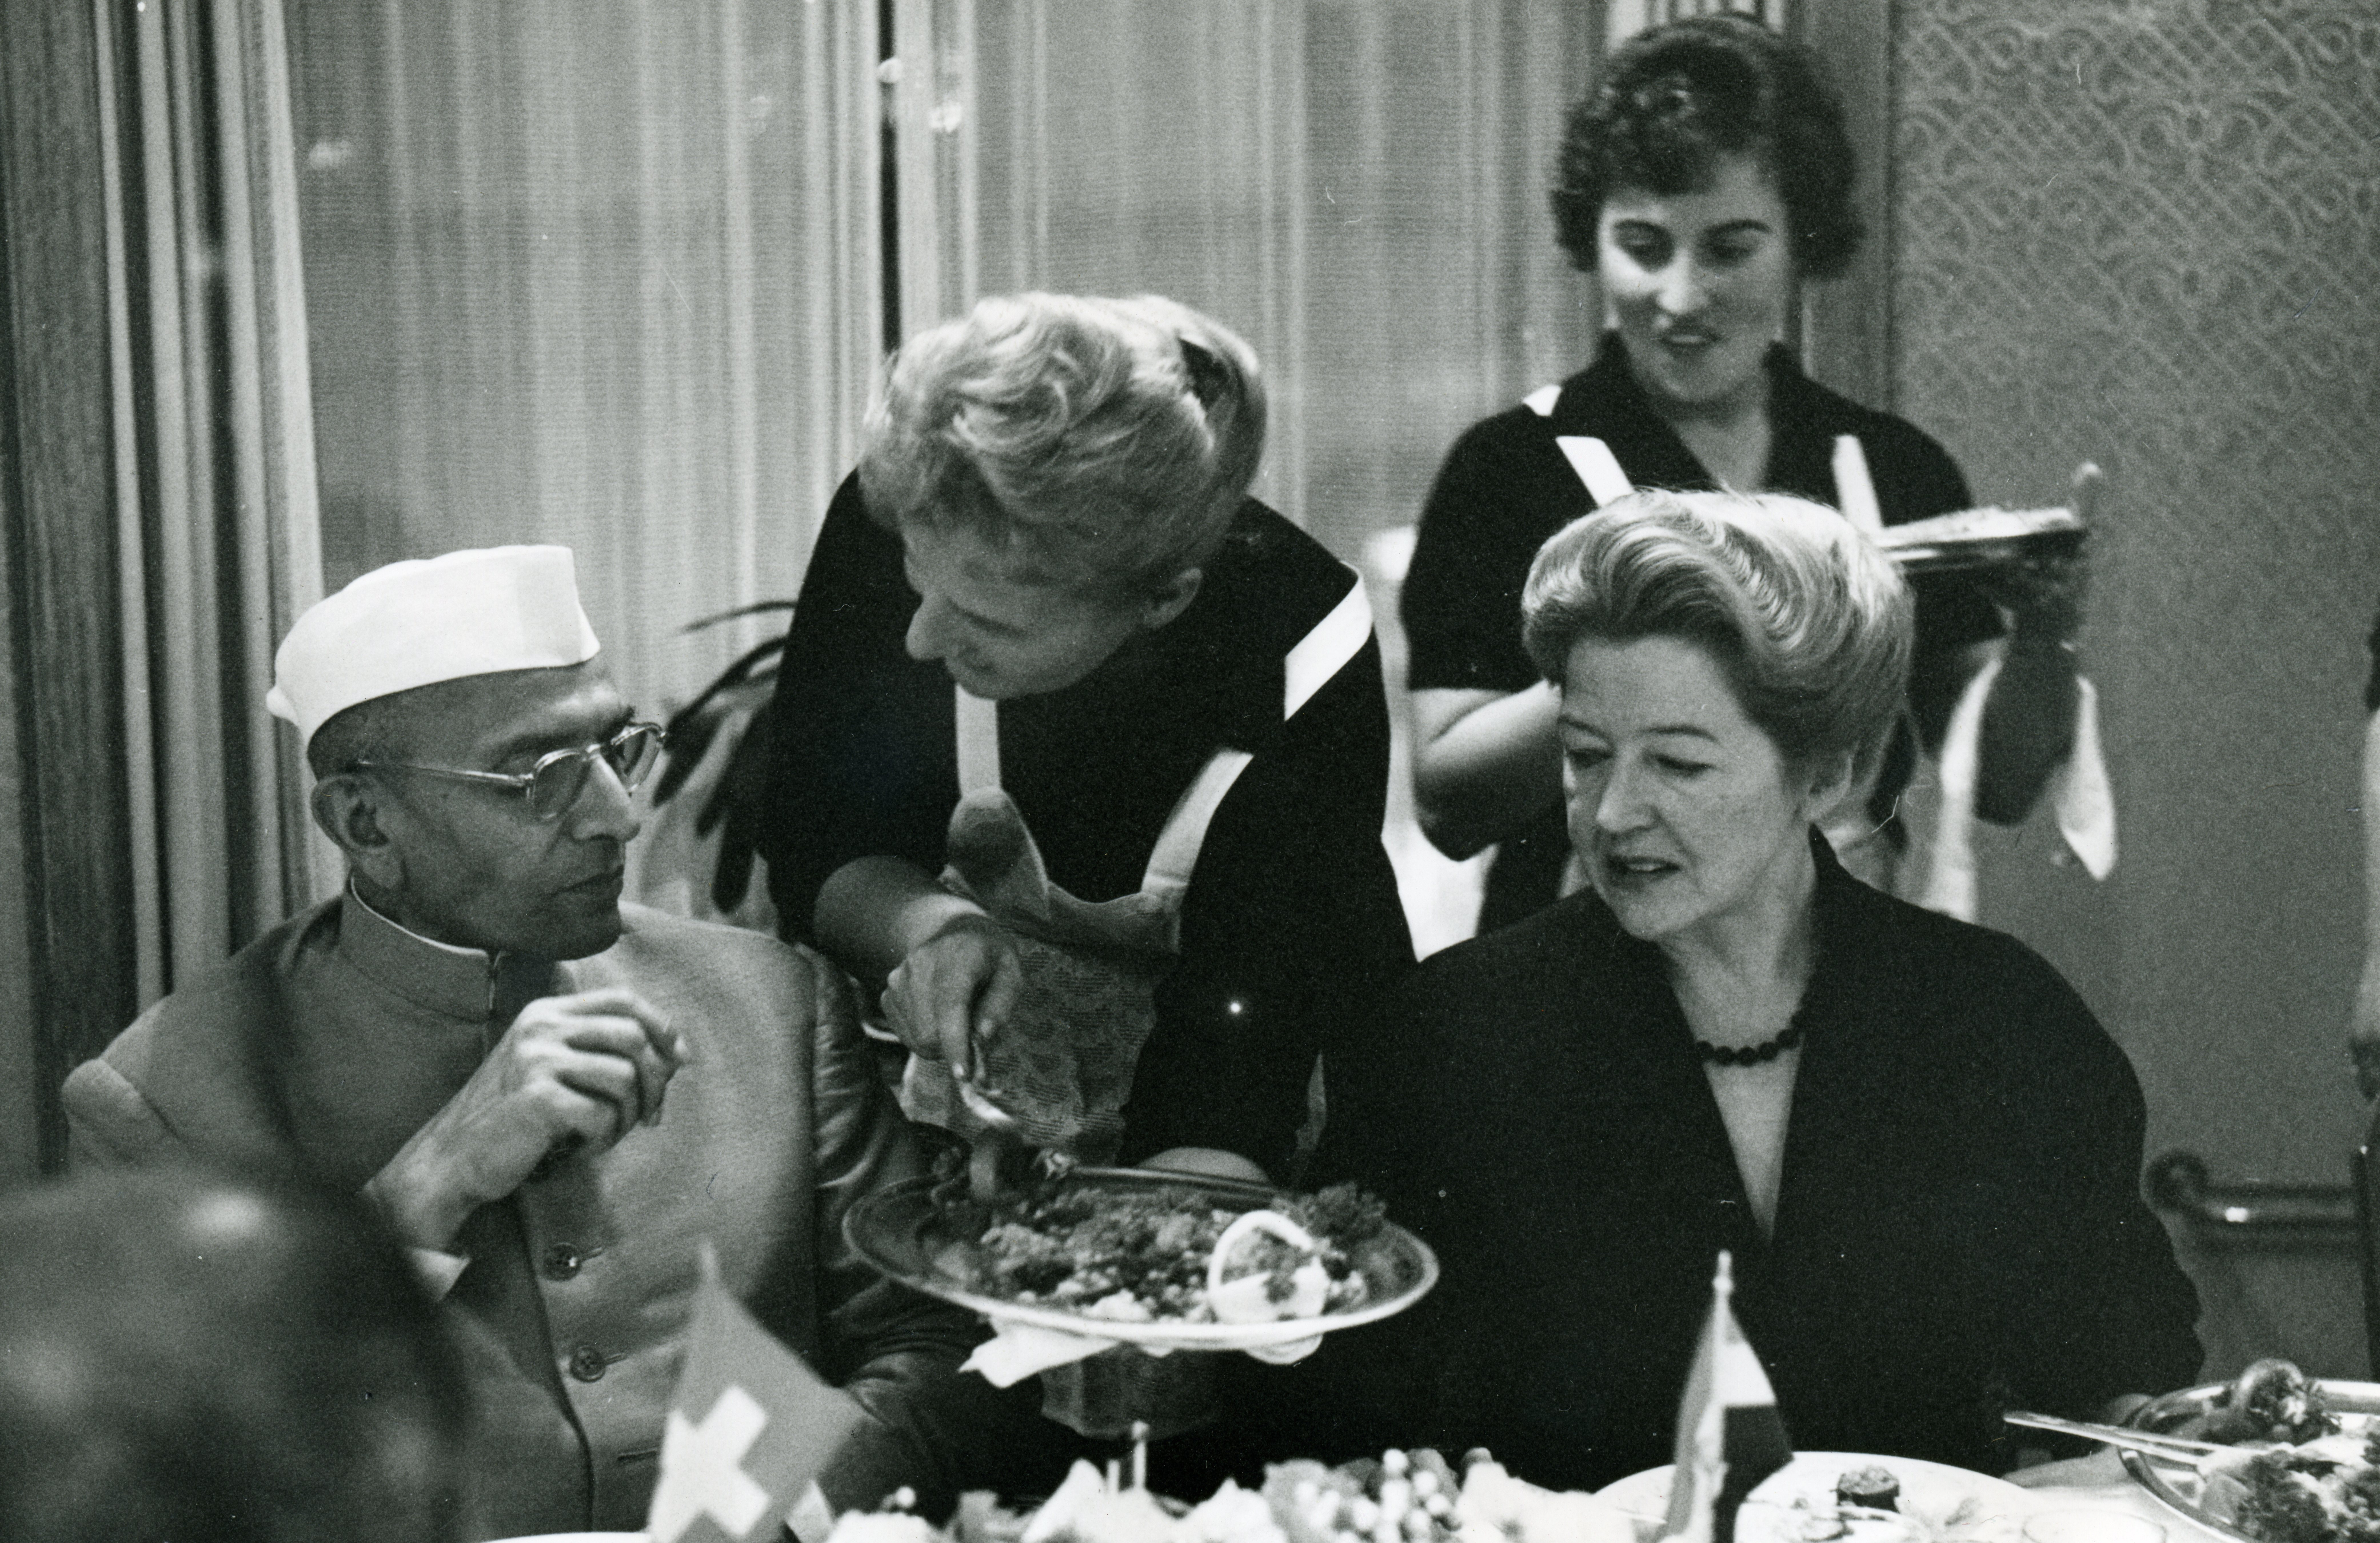 Margrith Hiltl (seat at right) brought Eastern influences to Hiltl's menu after traveling to India in the early 1950s. Here, she's seen dining with Indian Prime Minister Morarji Desai.